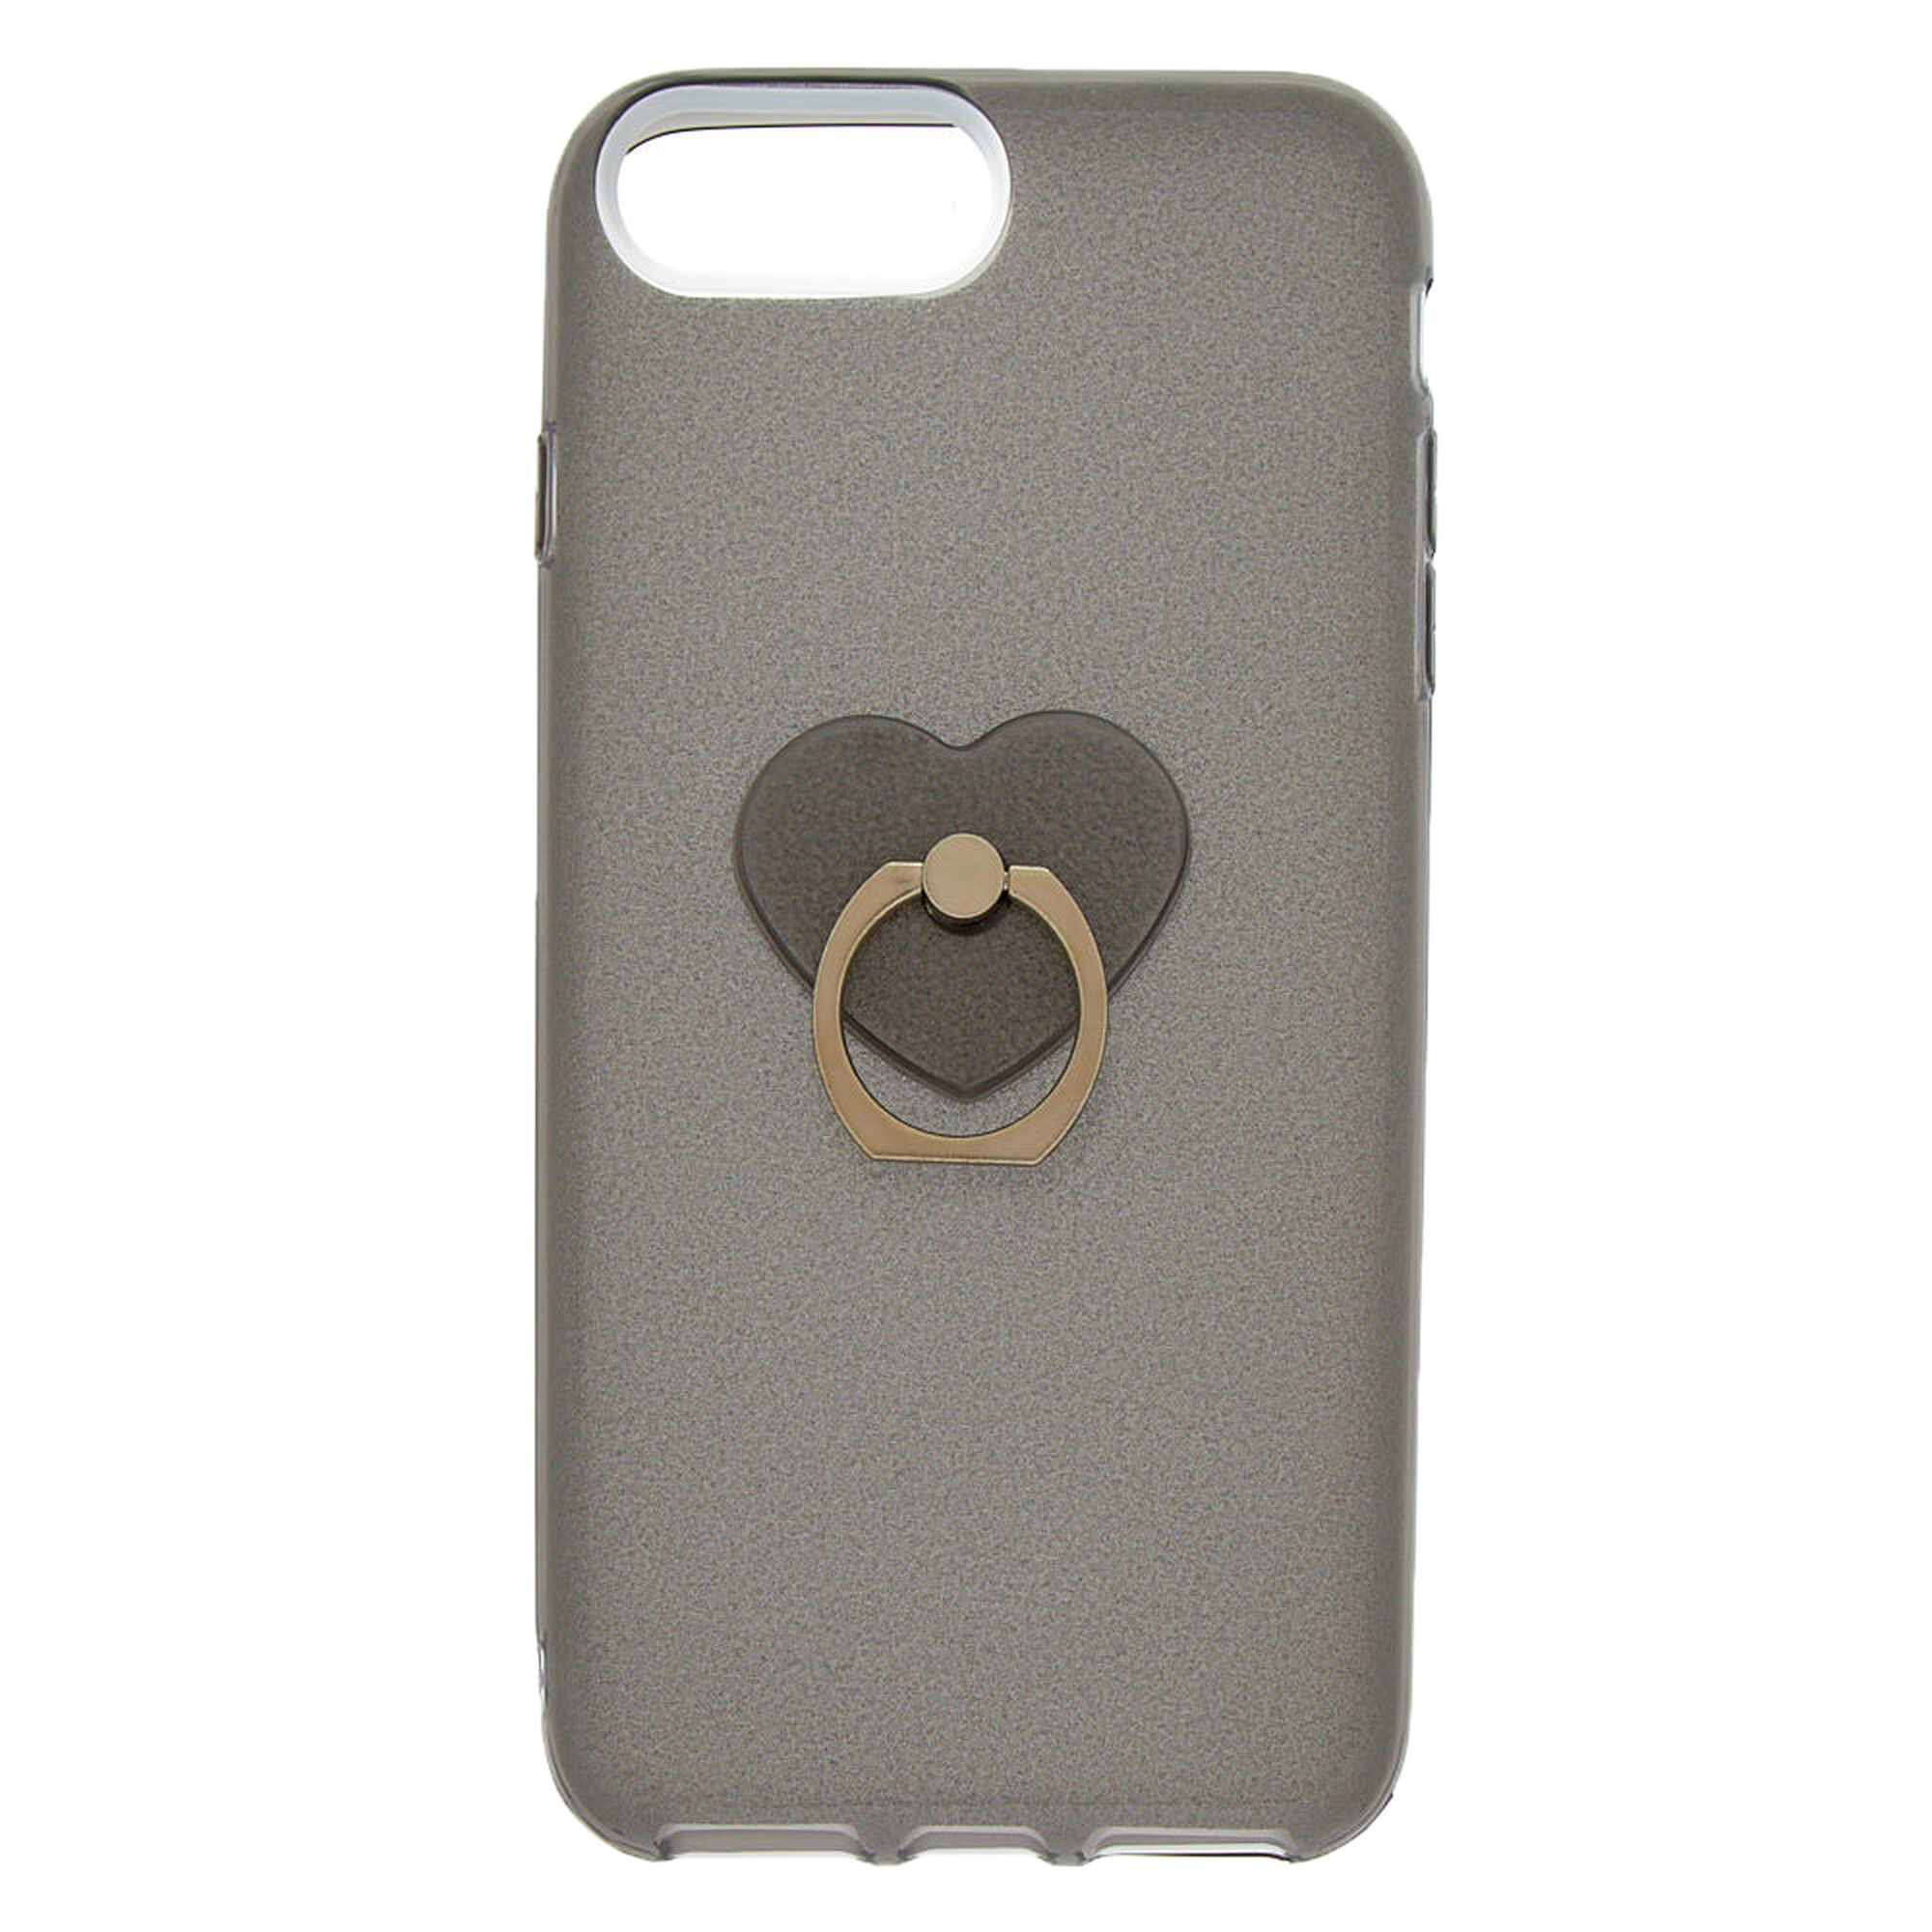 separation shoes 91703 74115 Glitter Heart Ring Holder Phone Case - Fits iPhone 6/7/8